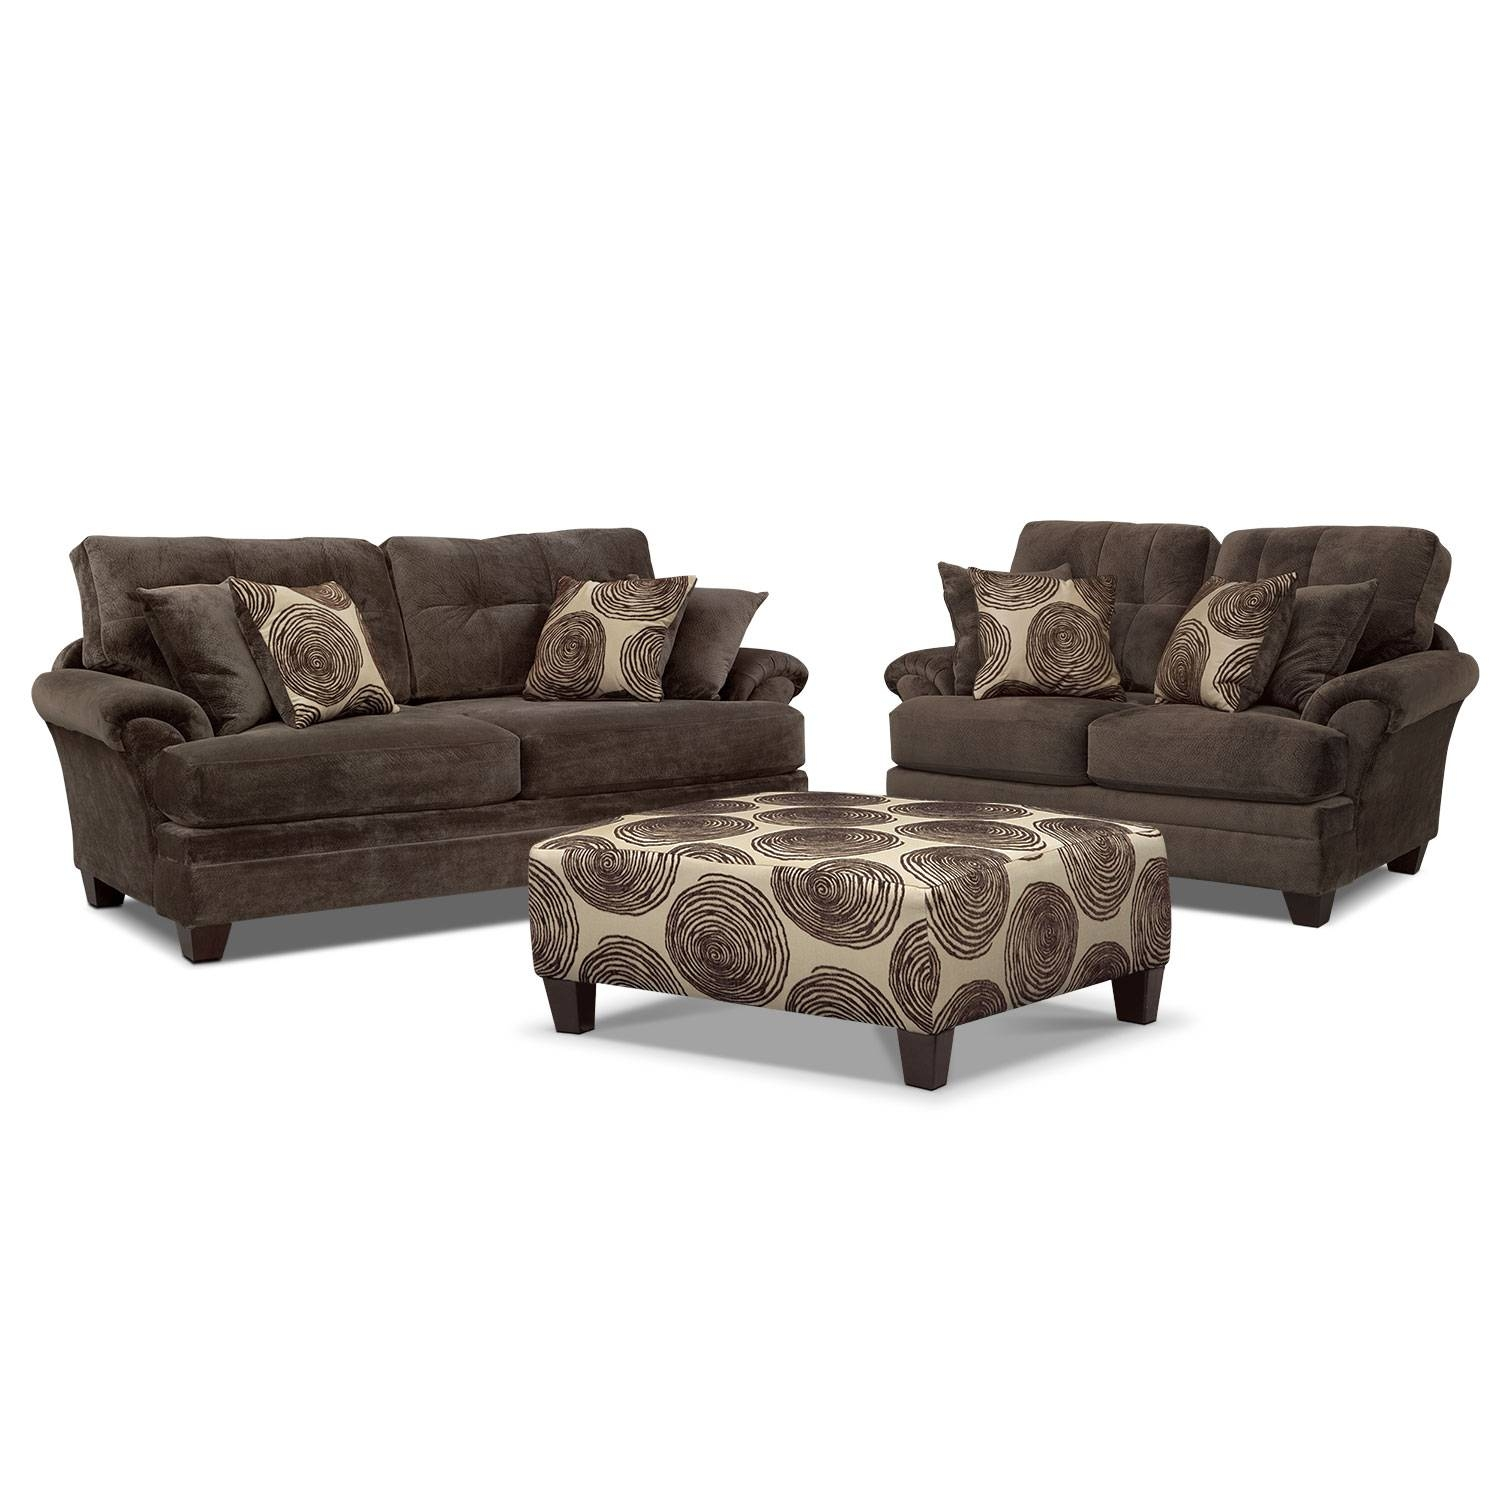 Cordelle Sofa And Swivel Chair Set - Chocolate | Value City Furniture inside Sofa With Swivel Chair (Image 4 of 30)